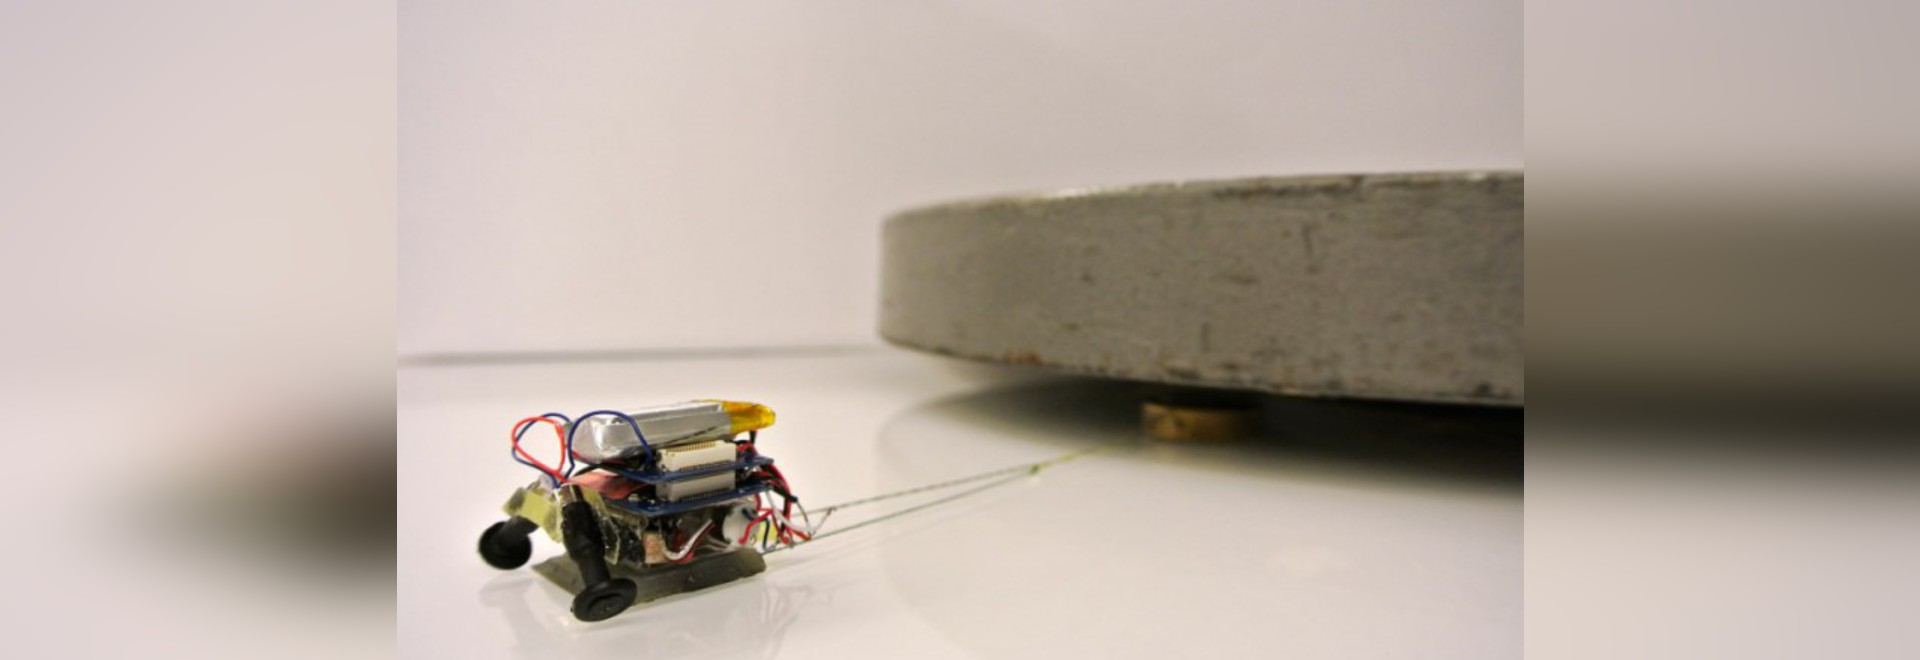 """MICROTUG"" ROBOTS PULL NEARLY 2,000 TIMES THEIR OWN WEIGHT"